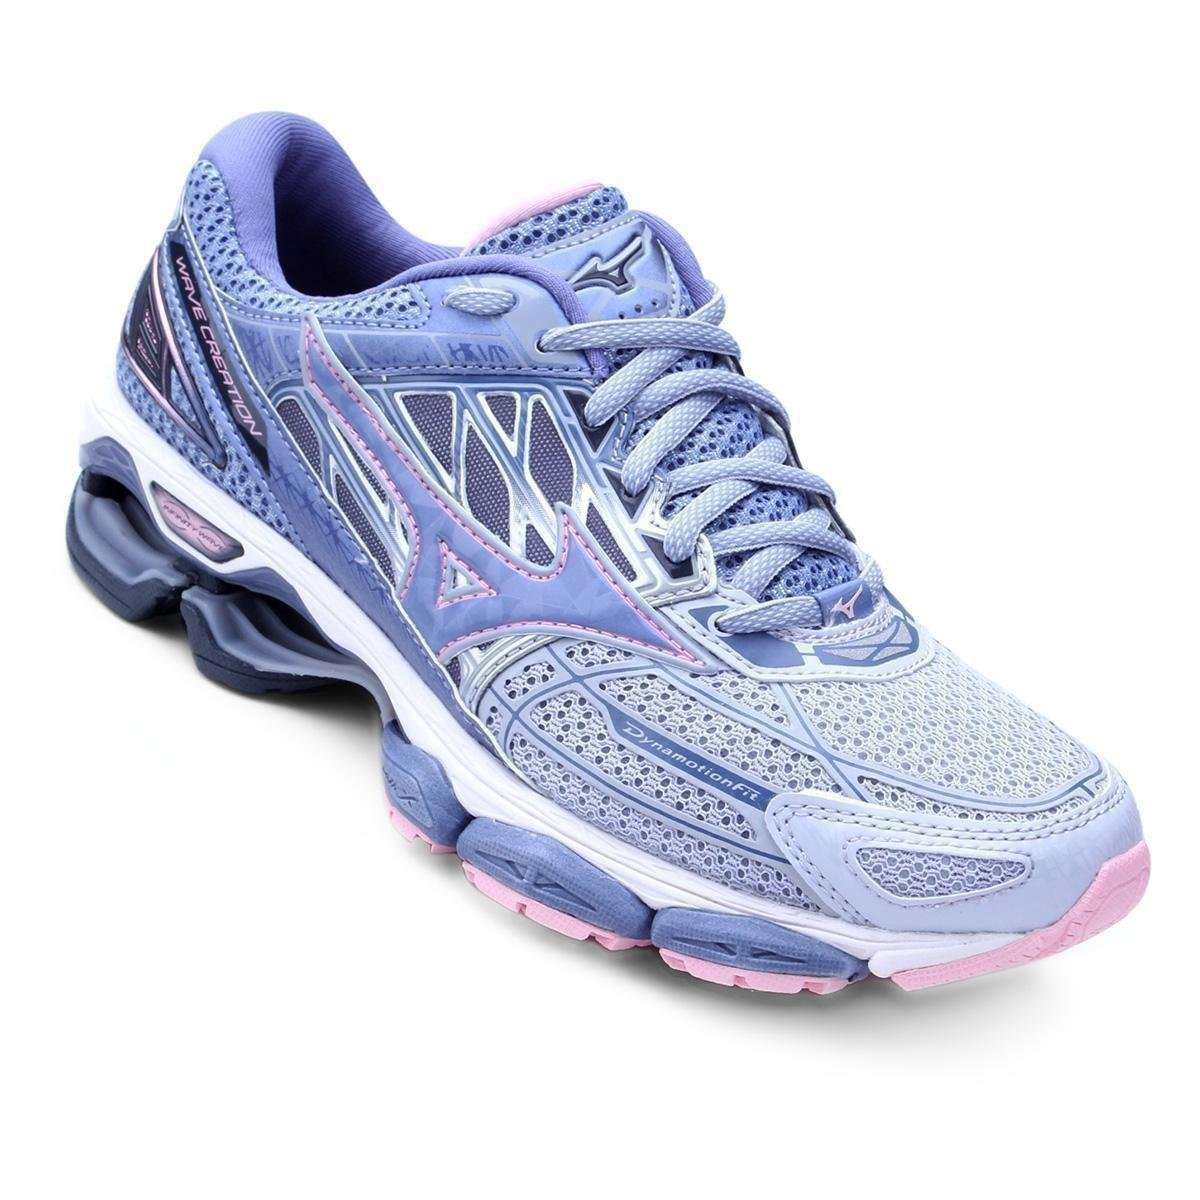 7e93611965 tenis mizuno wave creation feminino